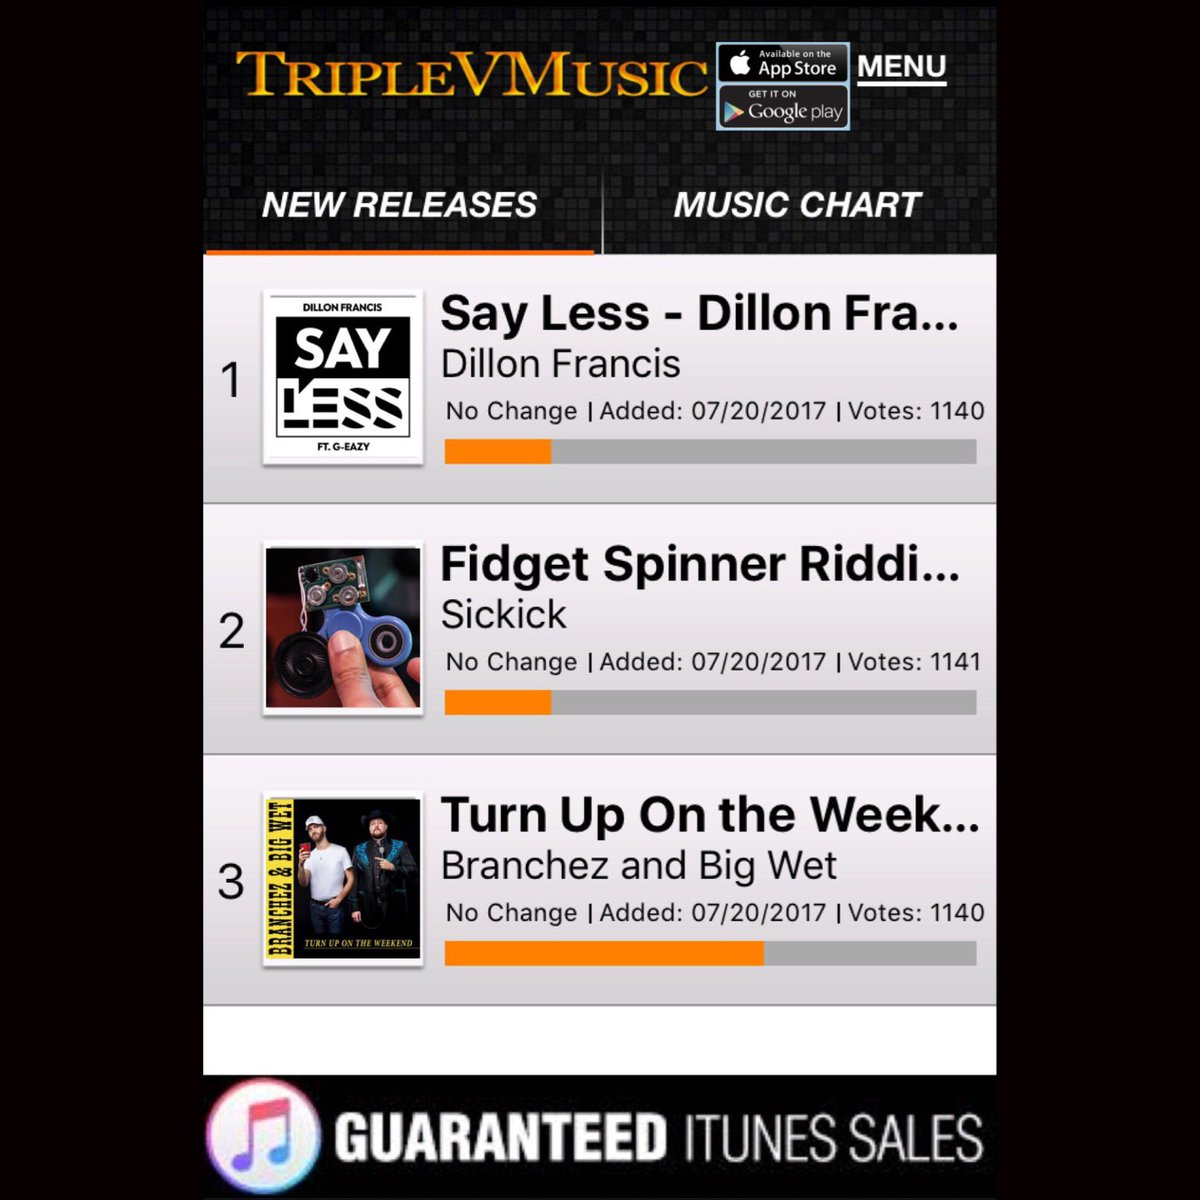 RT &amp; LIKE Voting Starts Today @TripleVMusic App for #DillonFrancis #Sickick &amp; #Branchez! #Music #MusicNews Download Vote  FREE gift cards <br>http://pic.twitter.com/chrbe8UZYR